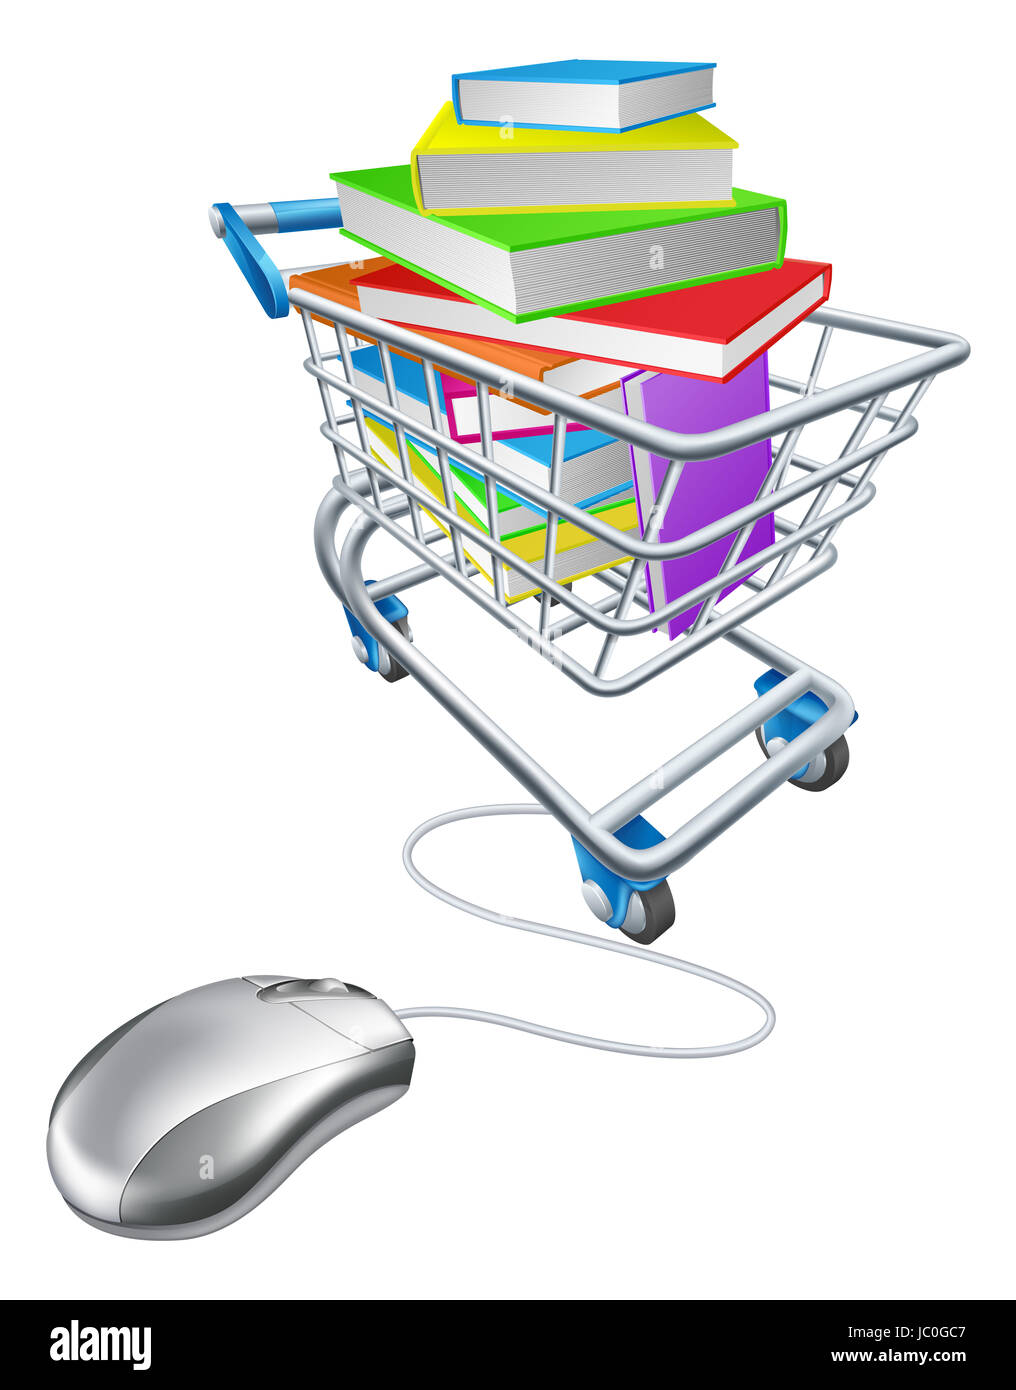 e93c828058a Online education or internet book shopping concept of a computer mouse  connected to a shopping cart or trolley full of books